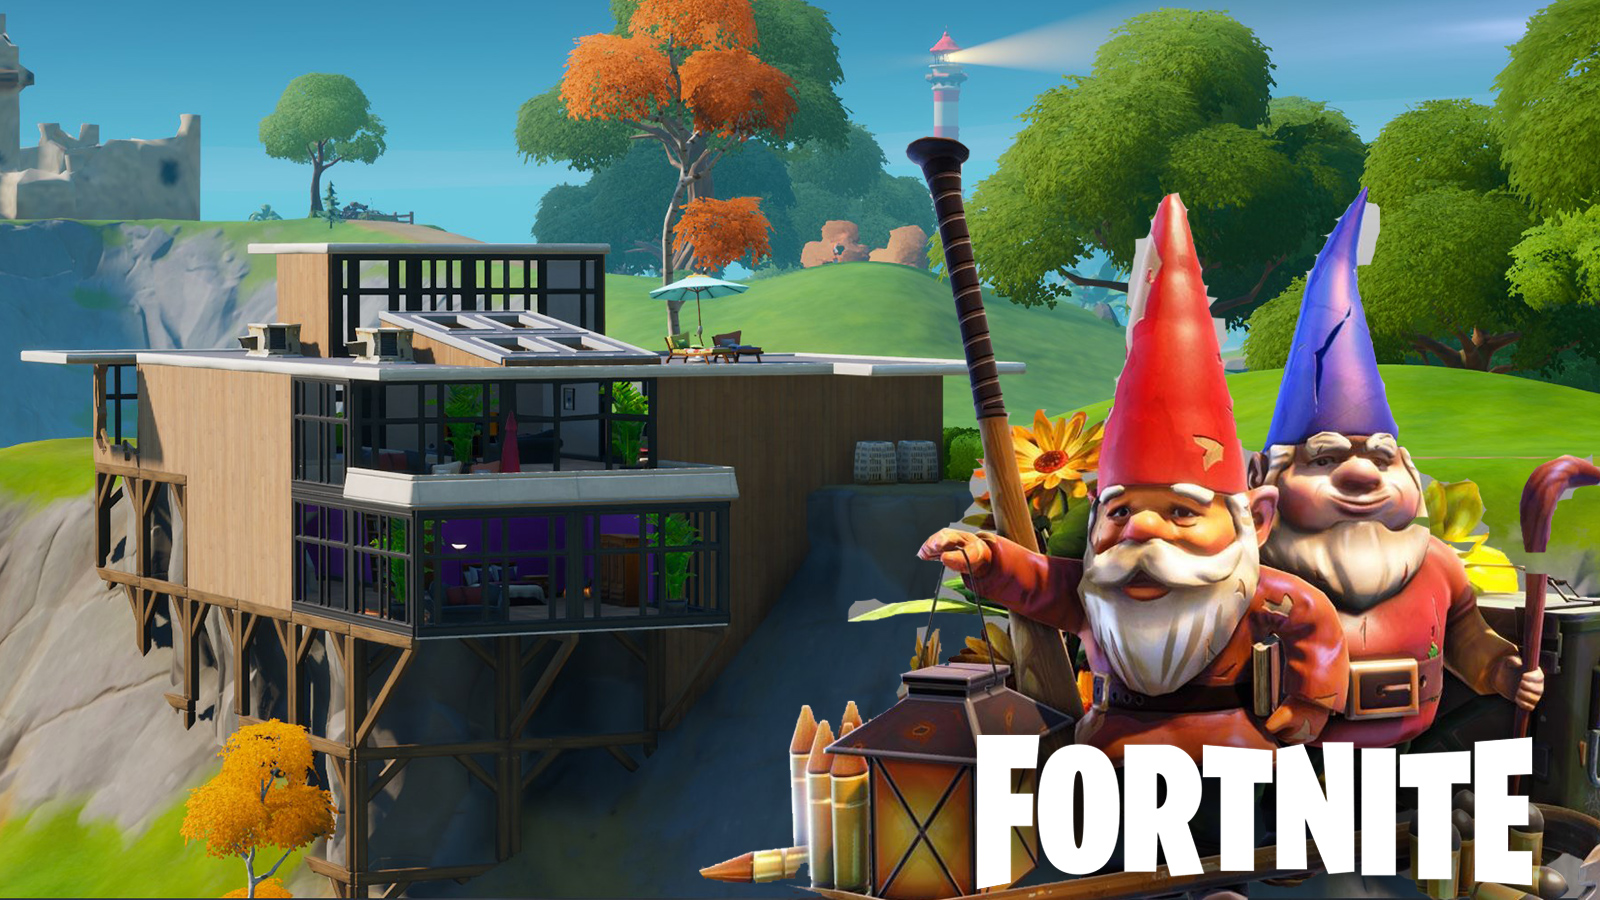 Fortnite gnomes at the Fancy View house.